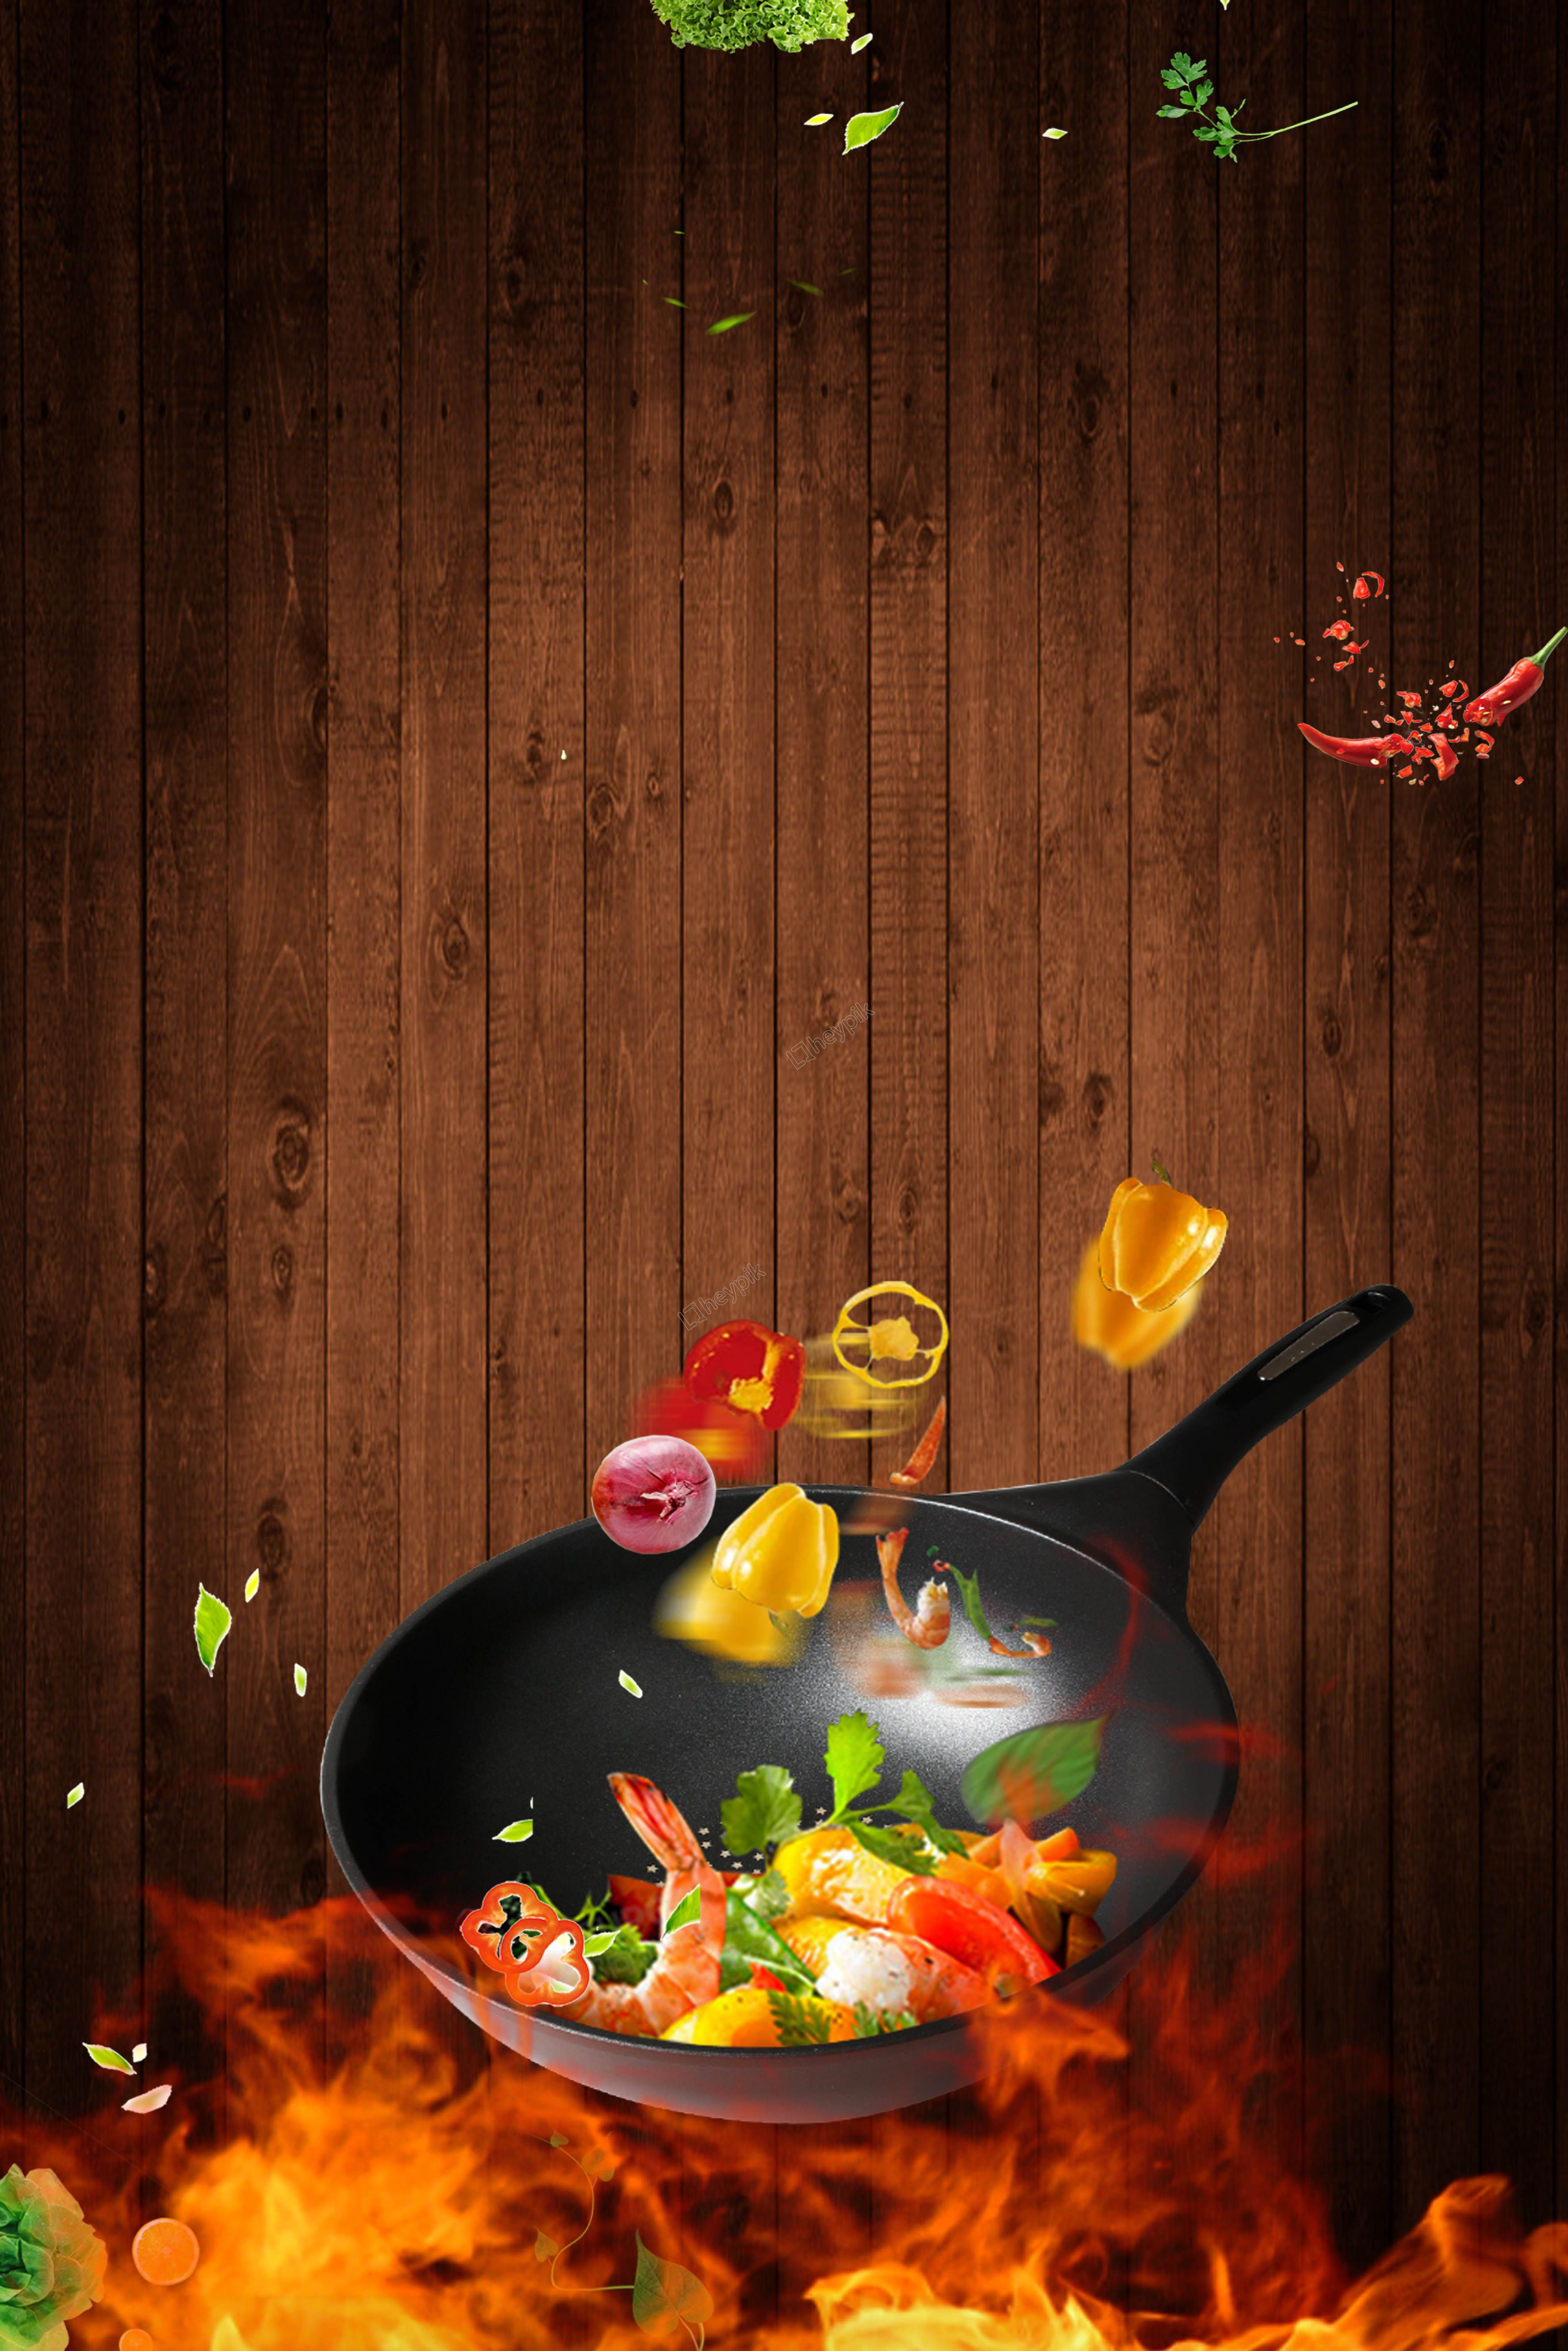 Stir Fried Creative Synthetic Stir Fry Catering Advertising